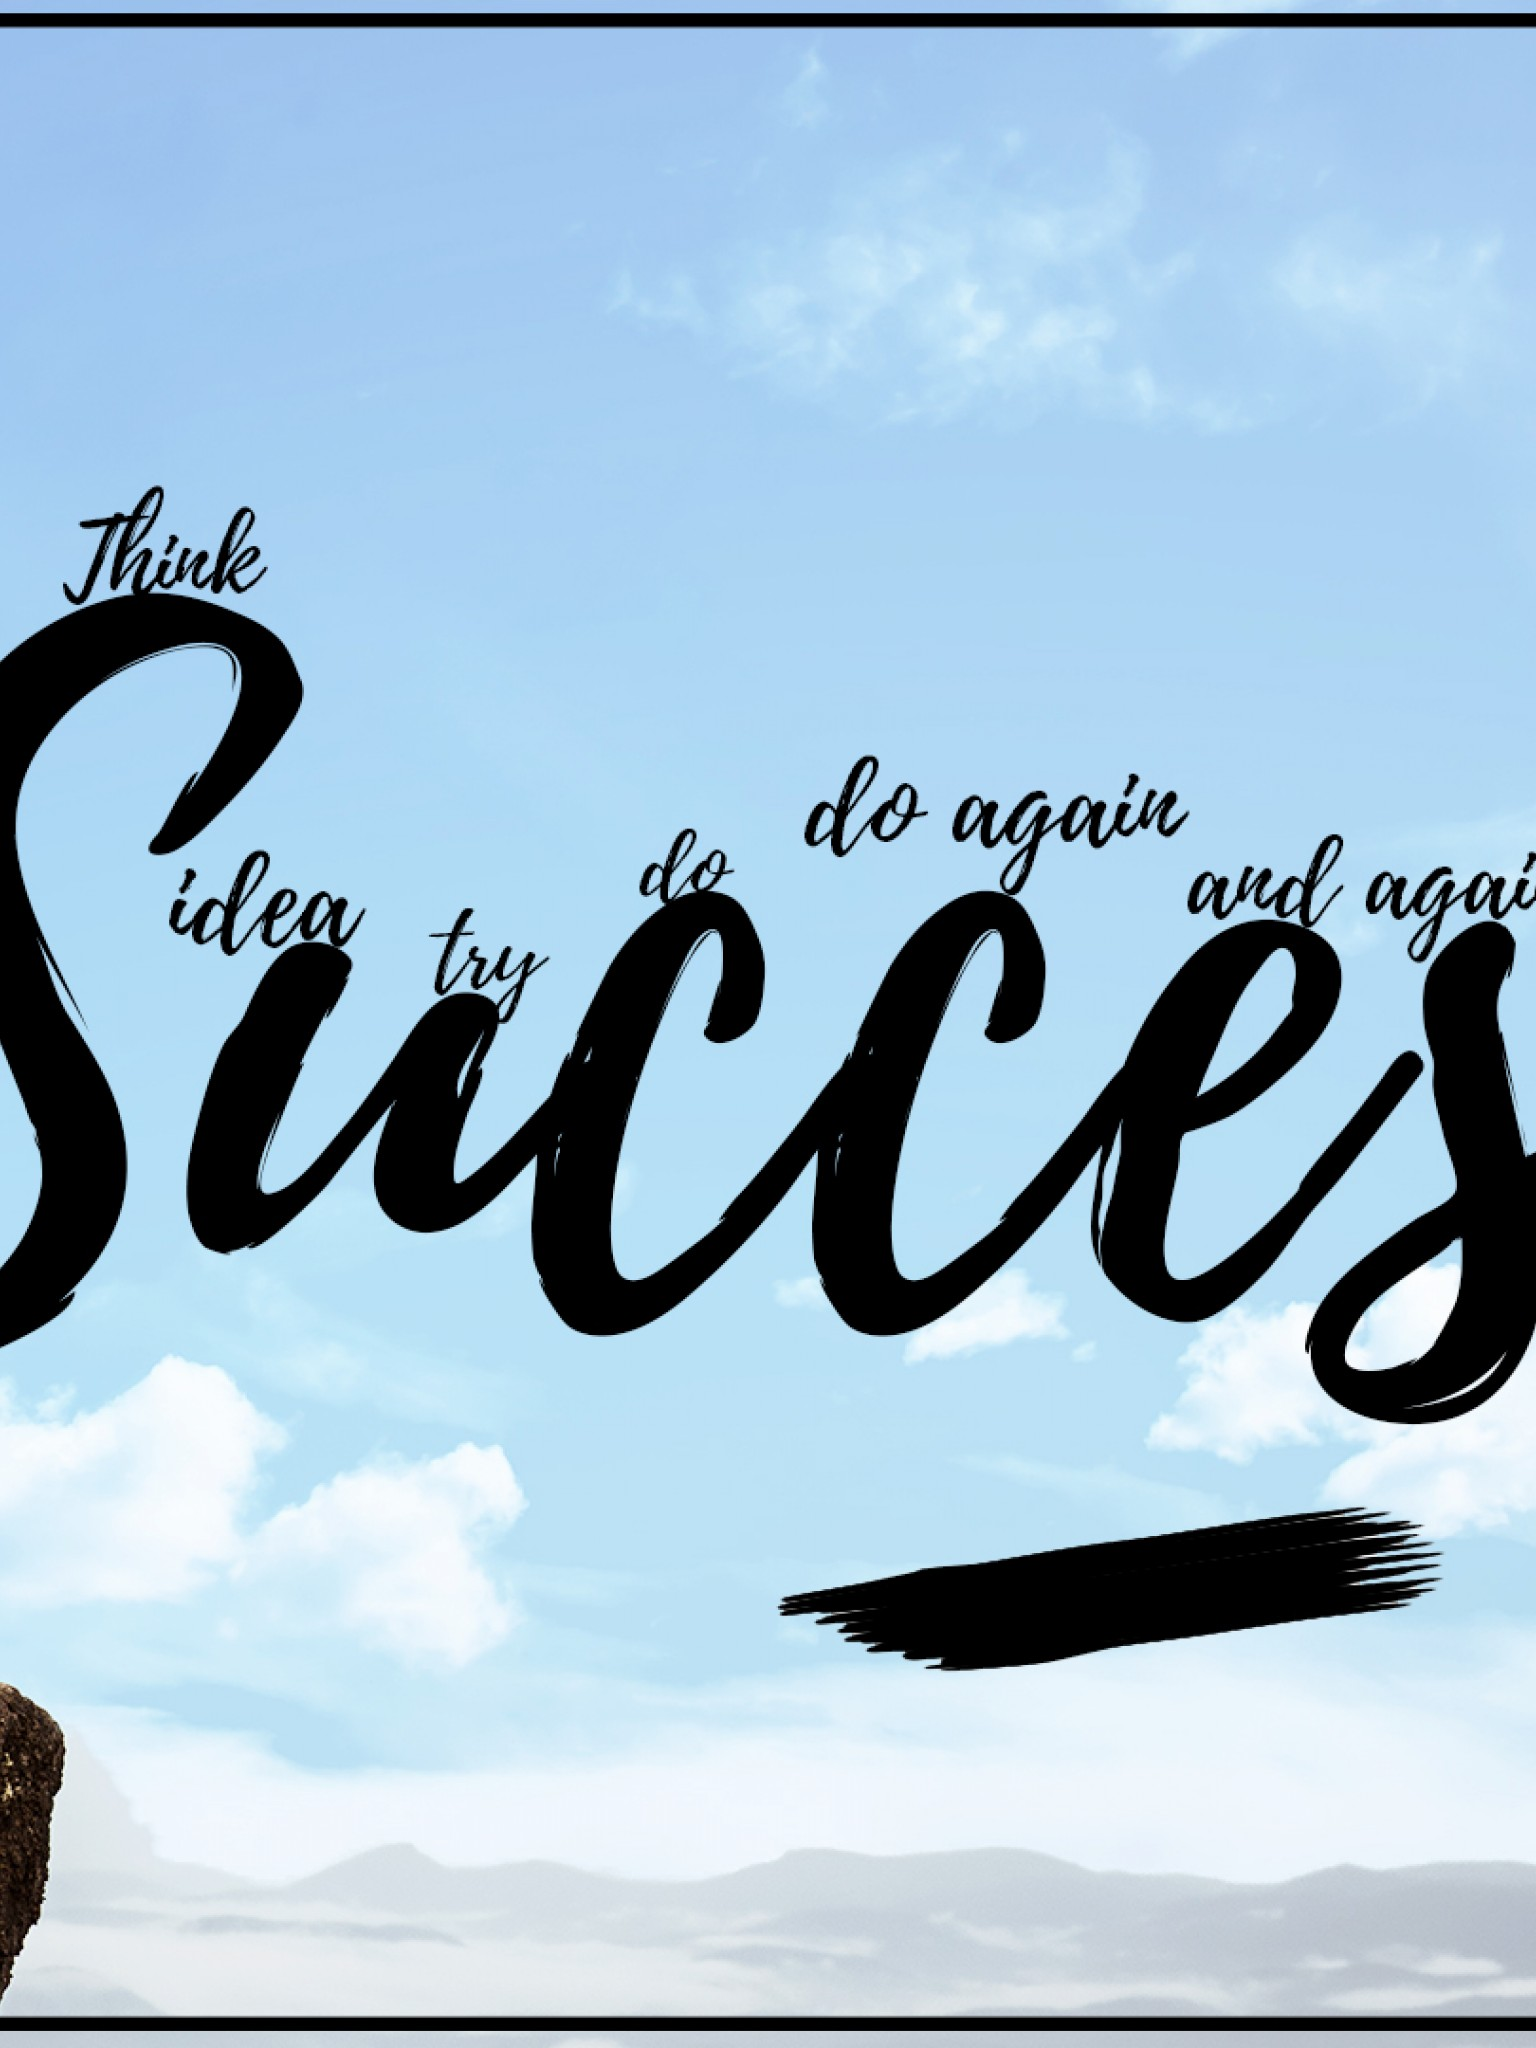 Success Hd Wallpaper Retina Ipad Hd Wallpaper Wallpapers Net